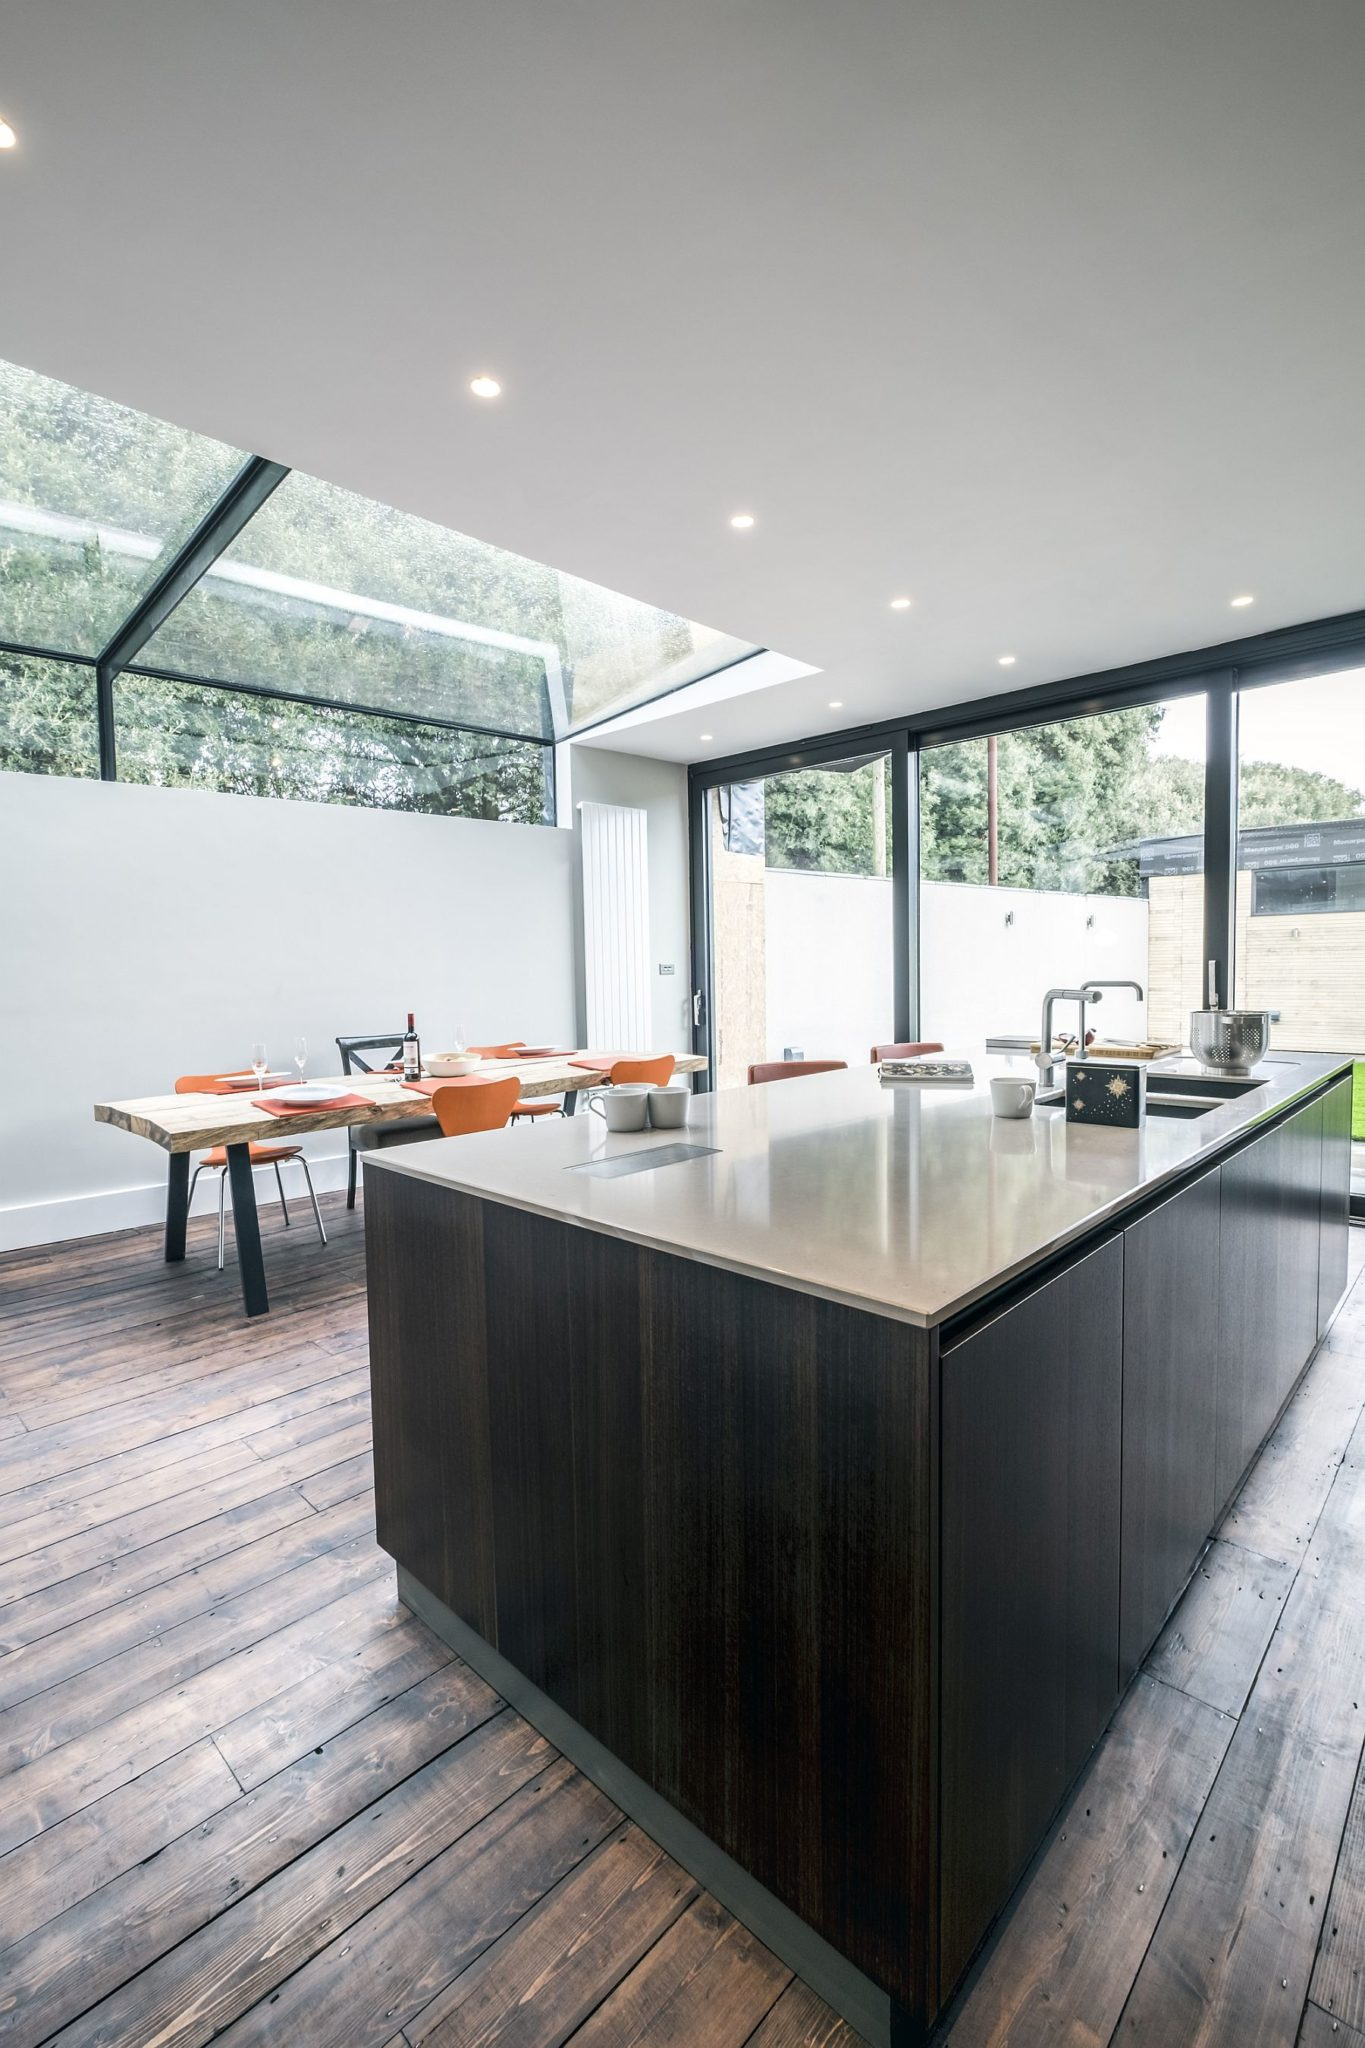 Light-filled kitchen and dining of the Victorian home in Eucalyptus wood and gray